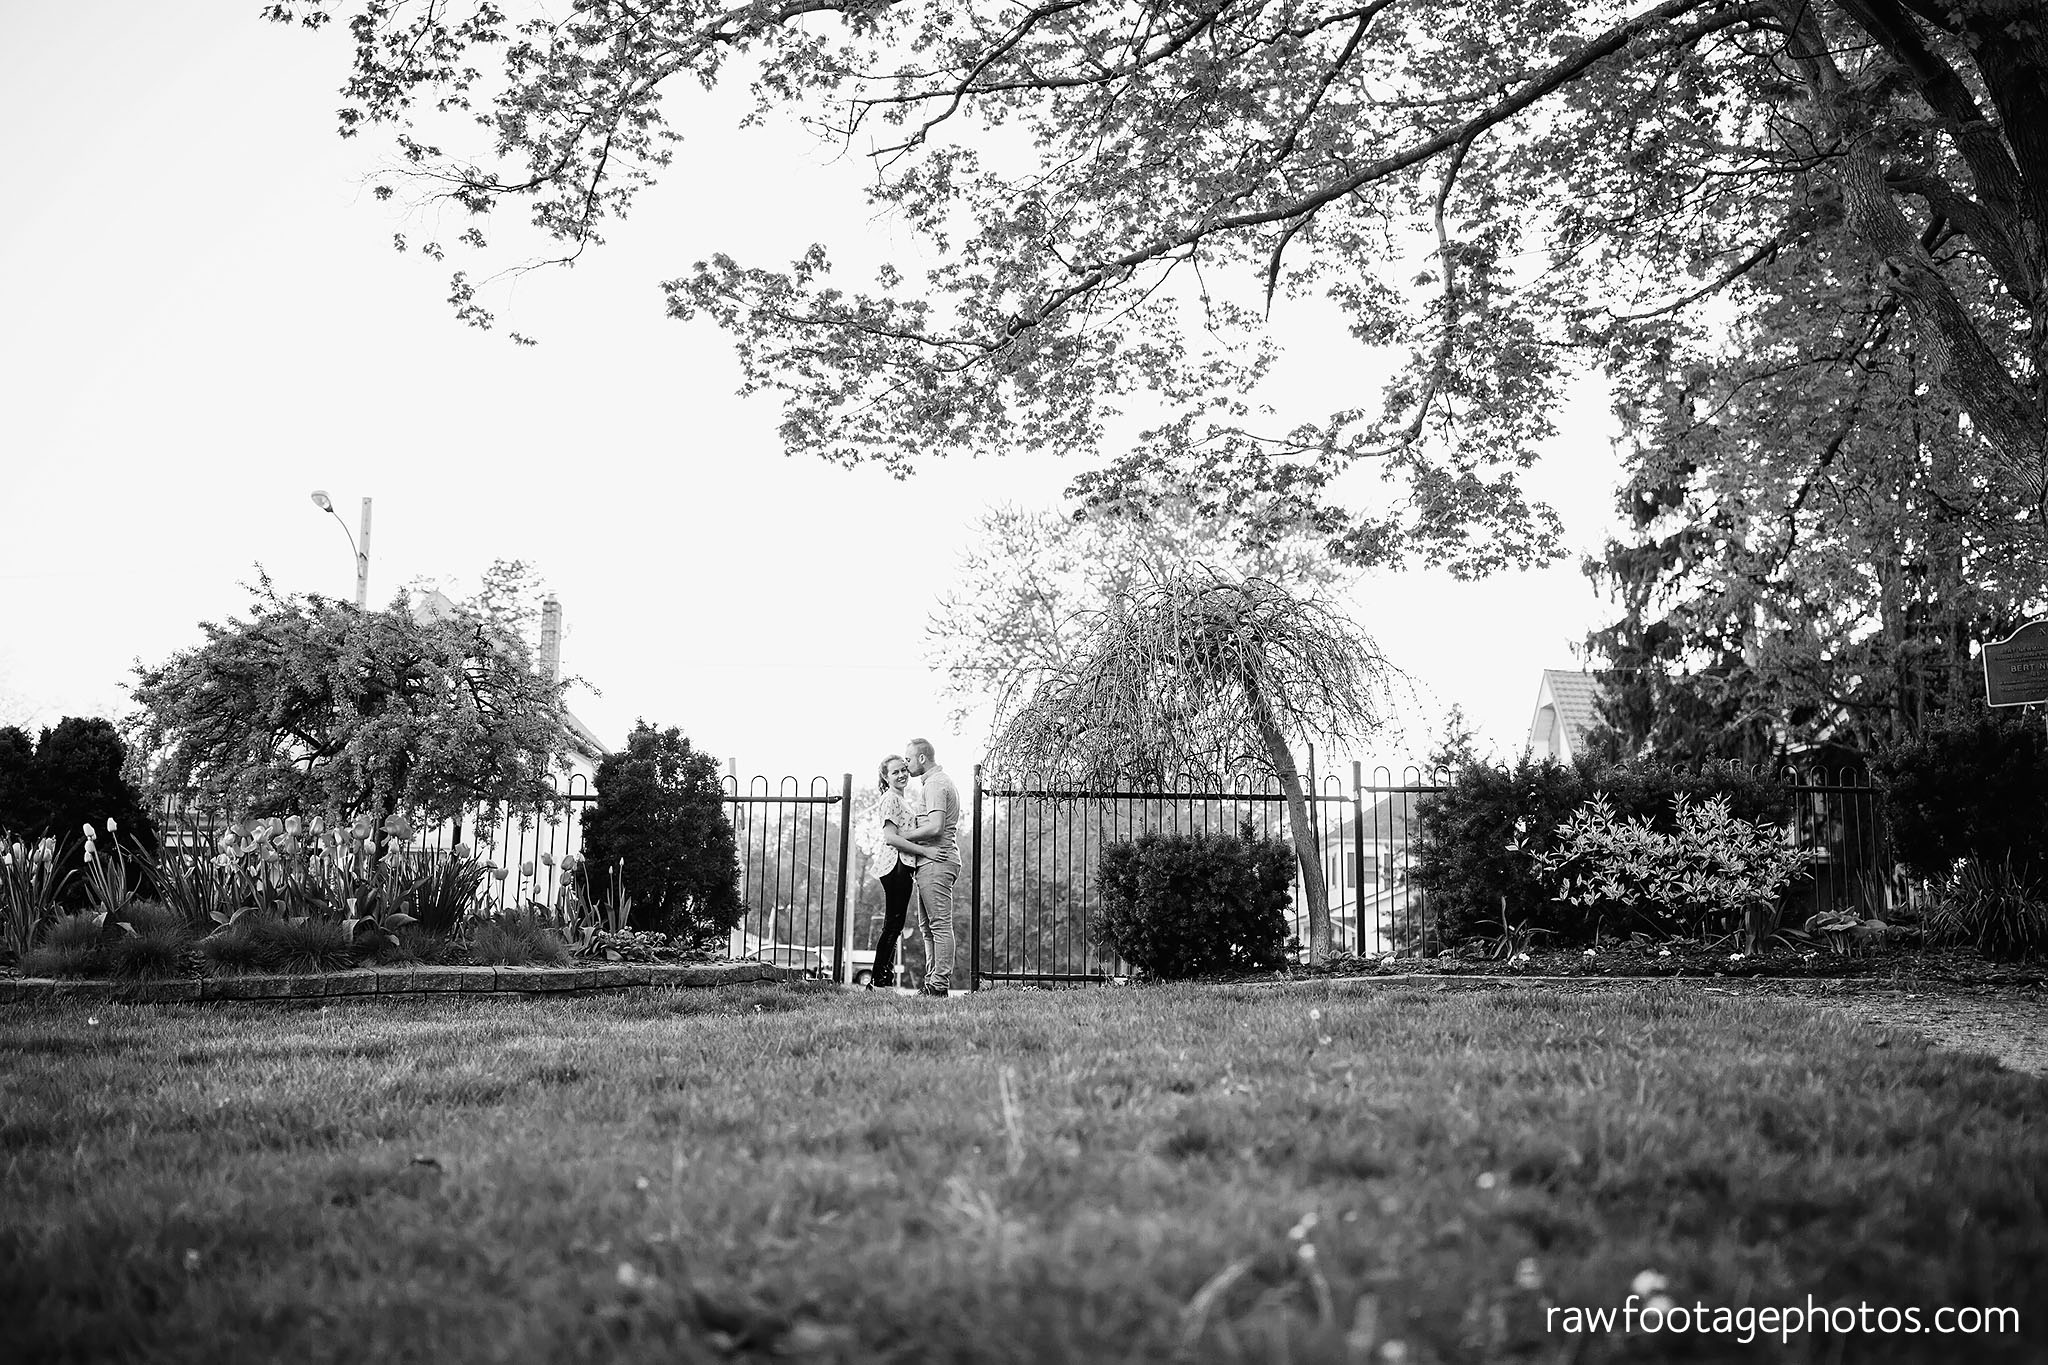 london_ontario_wedding_photographer-raw_footage_photography-engagement_session-airport_session-airplane-balloons-apple_orchard-spring_blooms-apple_blossoms037.jpg